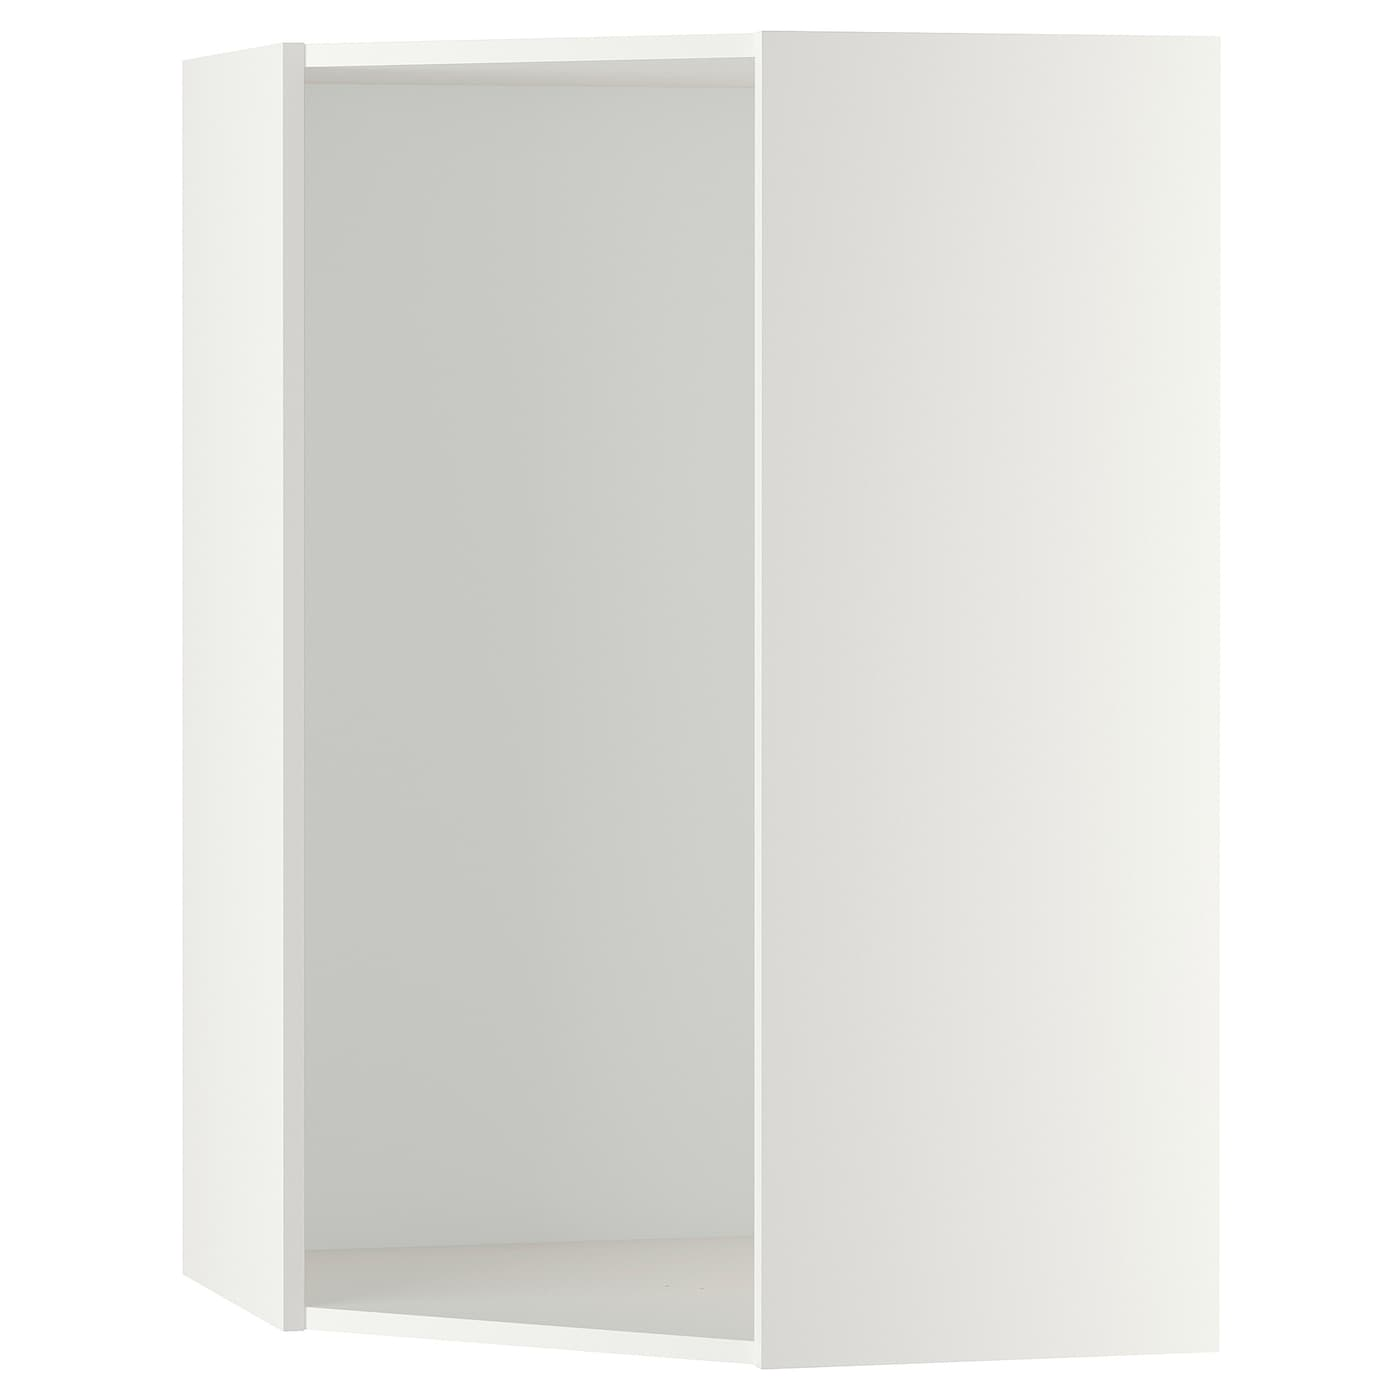 Metod Structure Element Mural D Angle Blanc 68x68x100 Cm Ikea